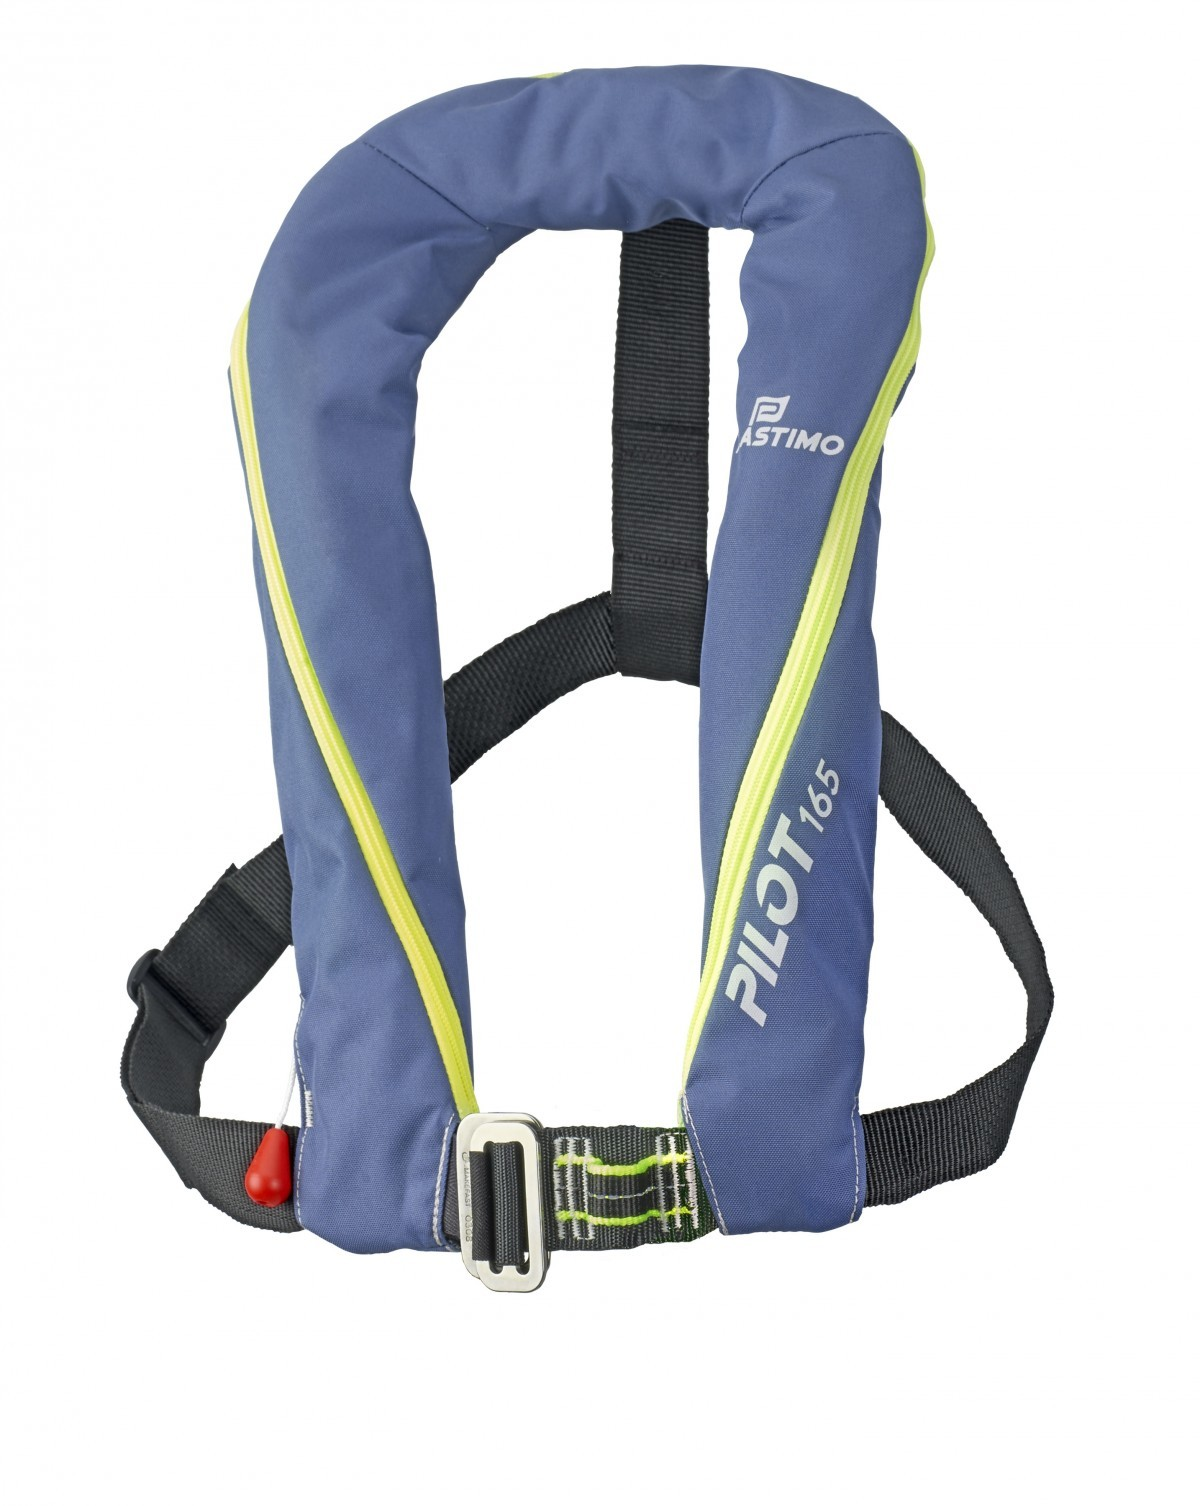 New Pilot 165 inflatable lifejacket with harness